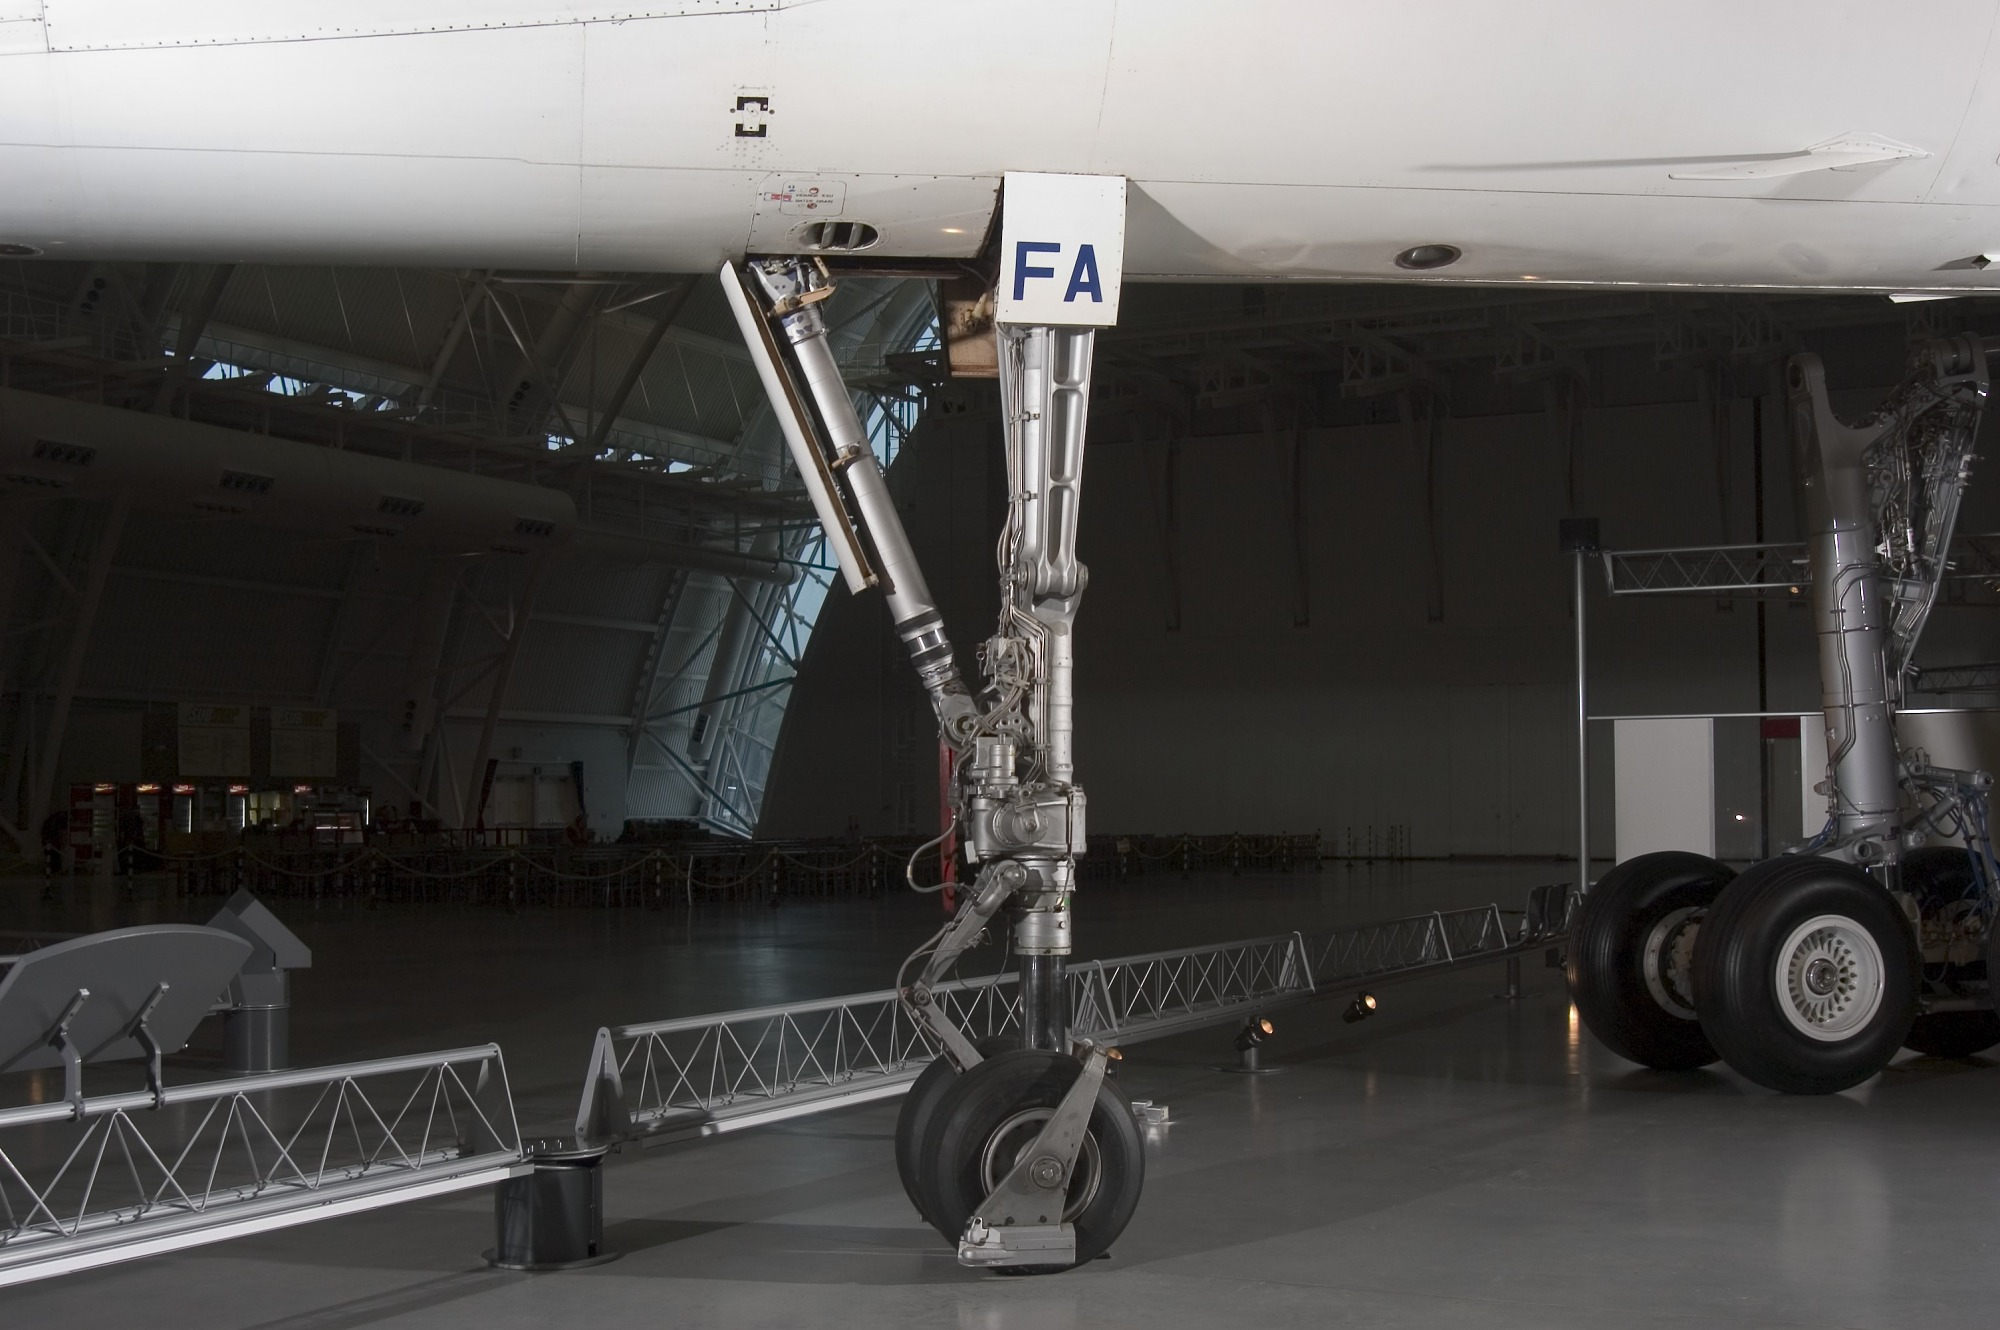 Concorde, Fox Alpha, Air France | National Air and Space Museum